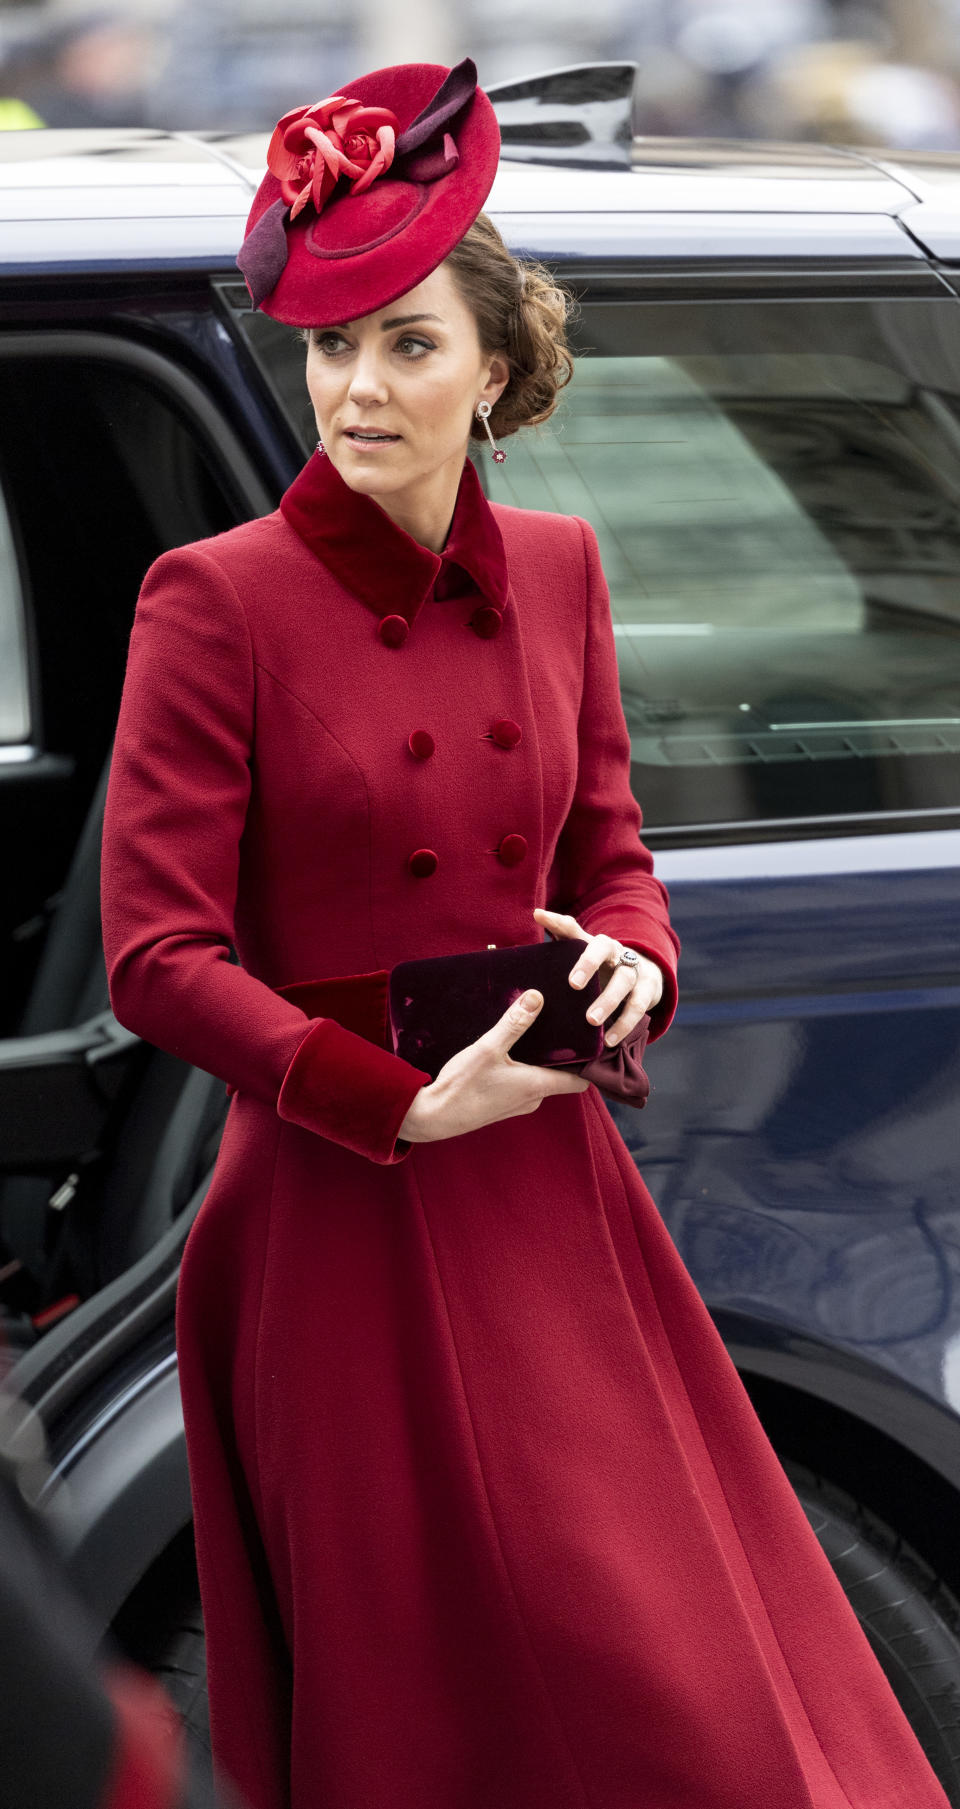 LONDON, ENGLAND - MARCH 09: Catherine, Duchess of Cambridge attends the Commonwealth Day Service 2020 at Westminster Abbey on March 9, 2020 in London, England. (Photo by Mark Cuthbert/UK Press via Getty Images)